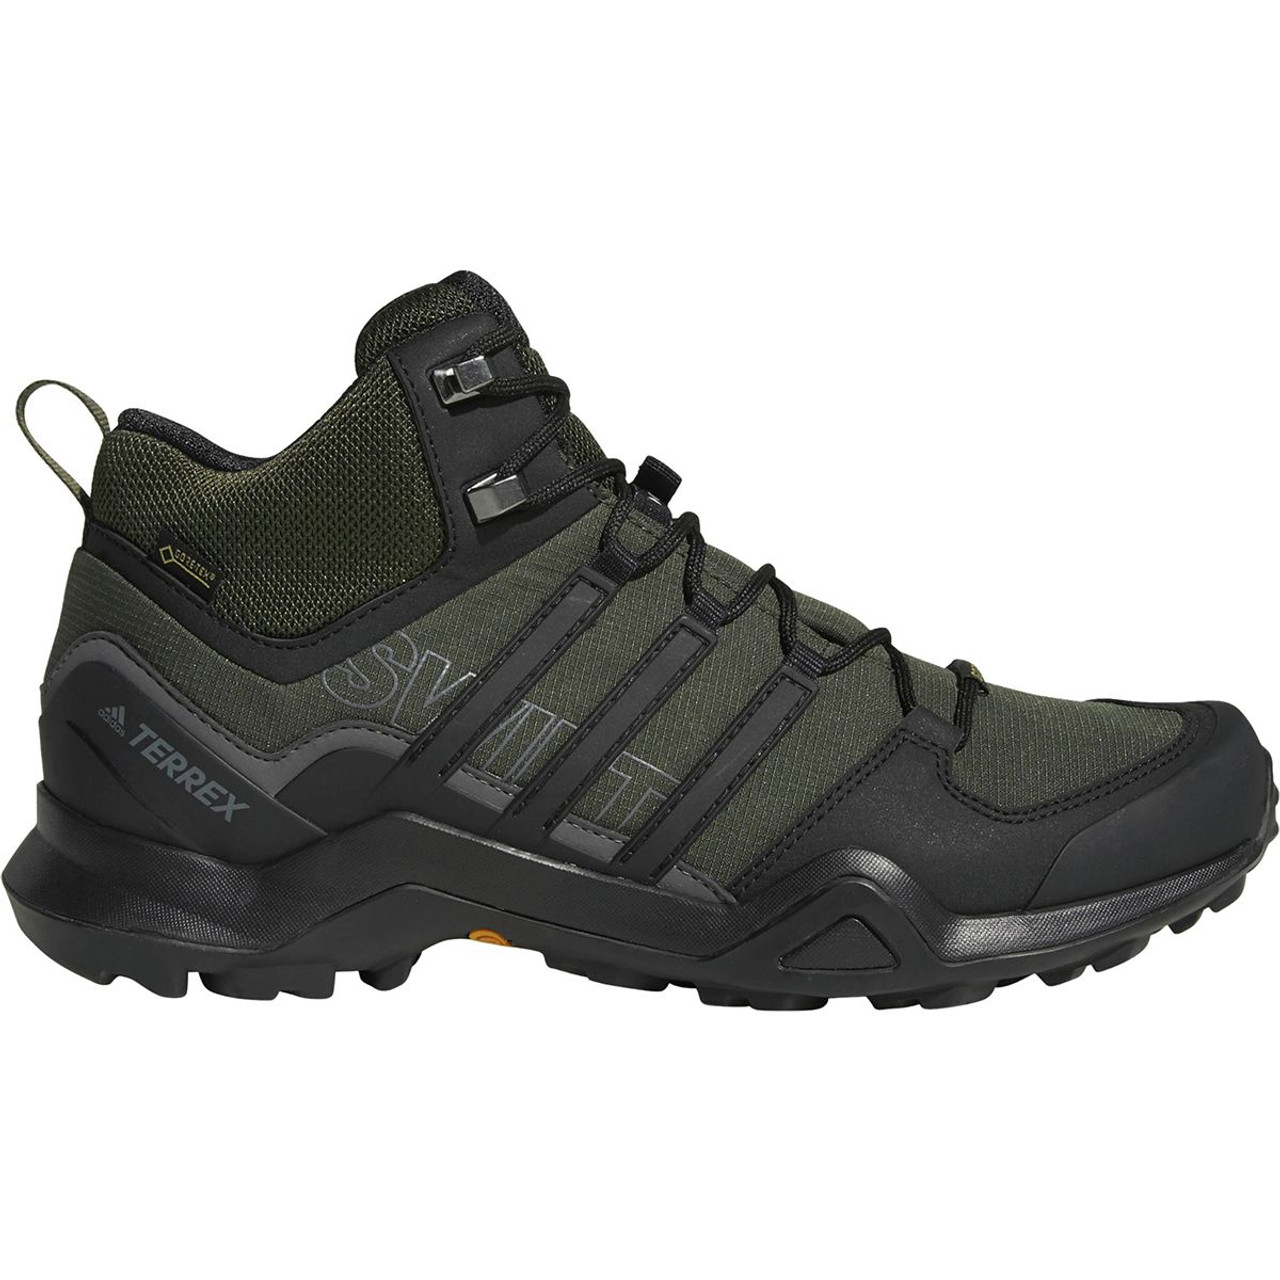 ff9328508da8 Adidas AC7772 Men s Terrex Swift R2 Mid GTX Hiking Black Shoes ...